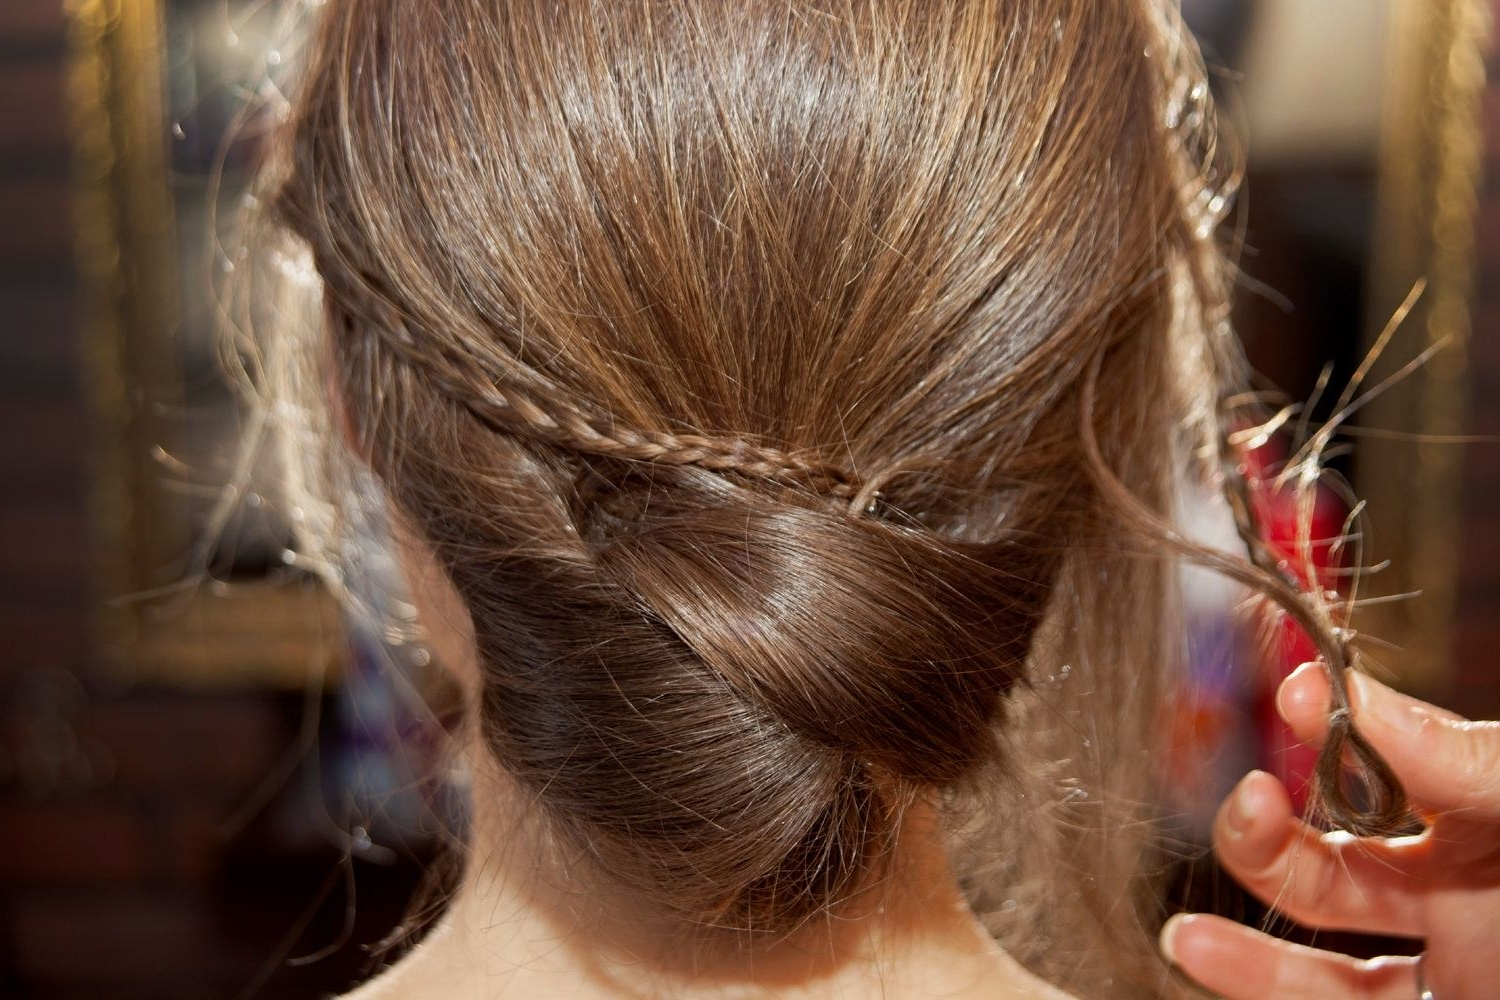 Well Liked Criss Cross Wedding Hairstyles Throughout Wedding Hairstyles Diy: Low Bun With Accent Braid How To – Glamour (View 4 of 20)